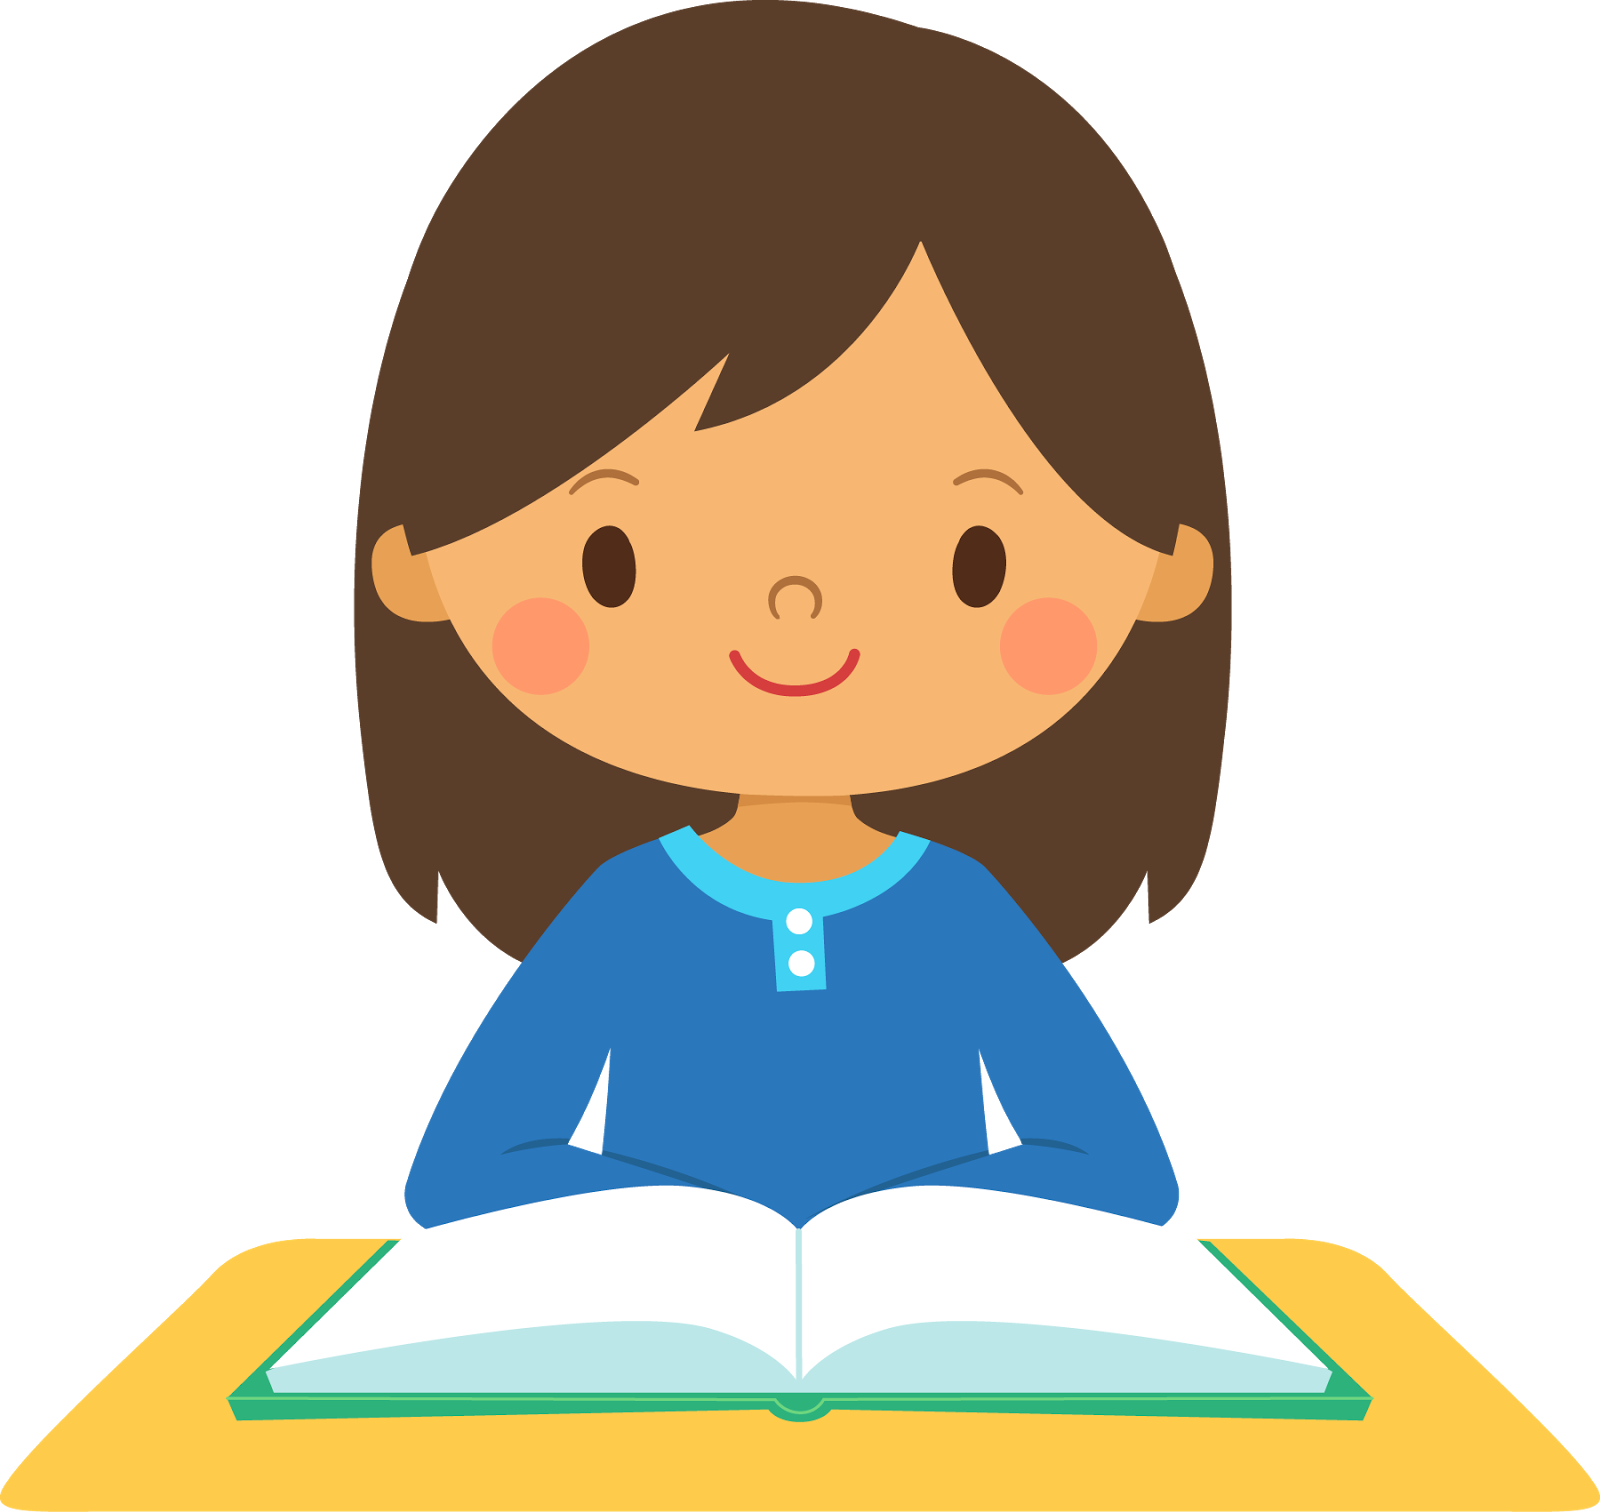 Girl going to school clipart png royalty free download smiling girl at a desk with a book | Books & Libraries | Pinterest ... png royalty free download